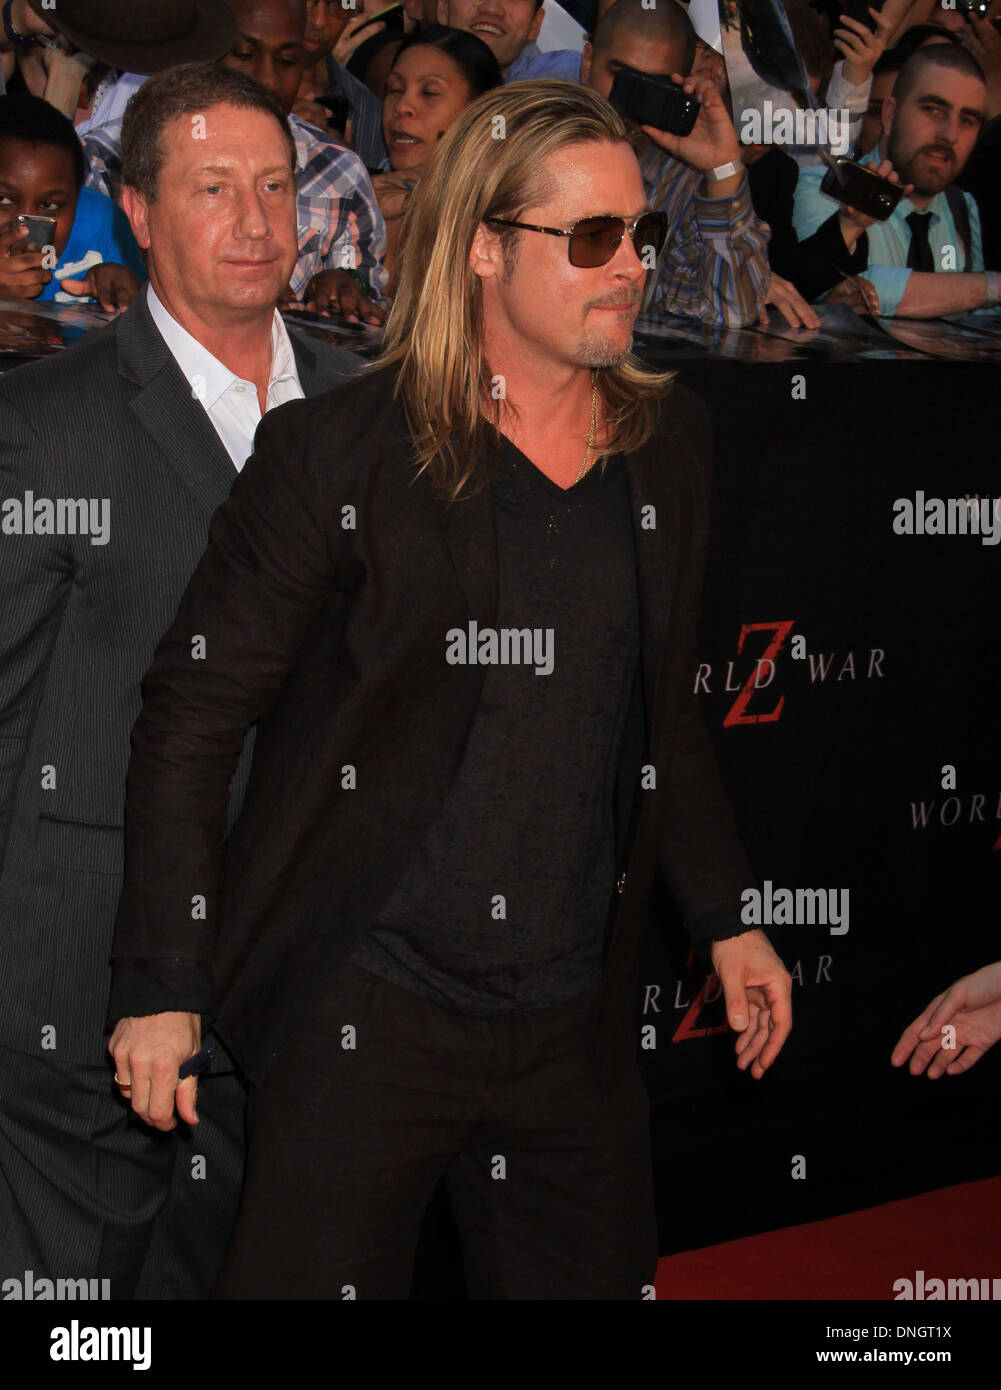 Actor Brad Pitt attends the 'World War Z' premiere in Times Square. Stock Photo